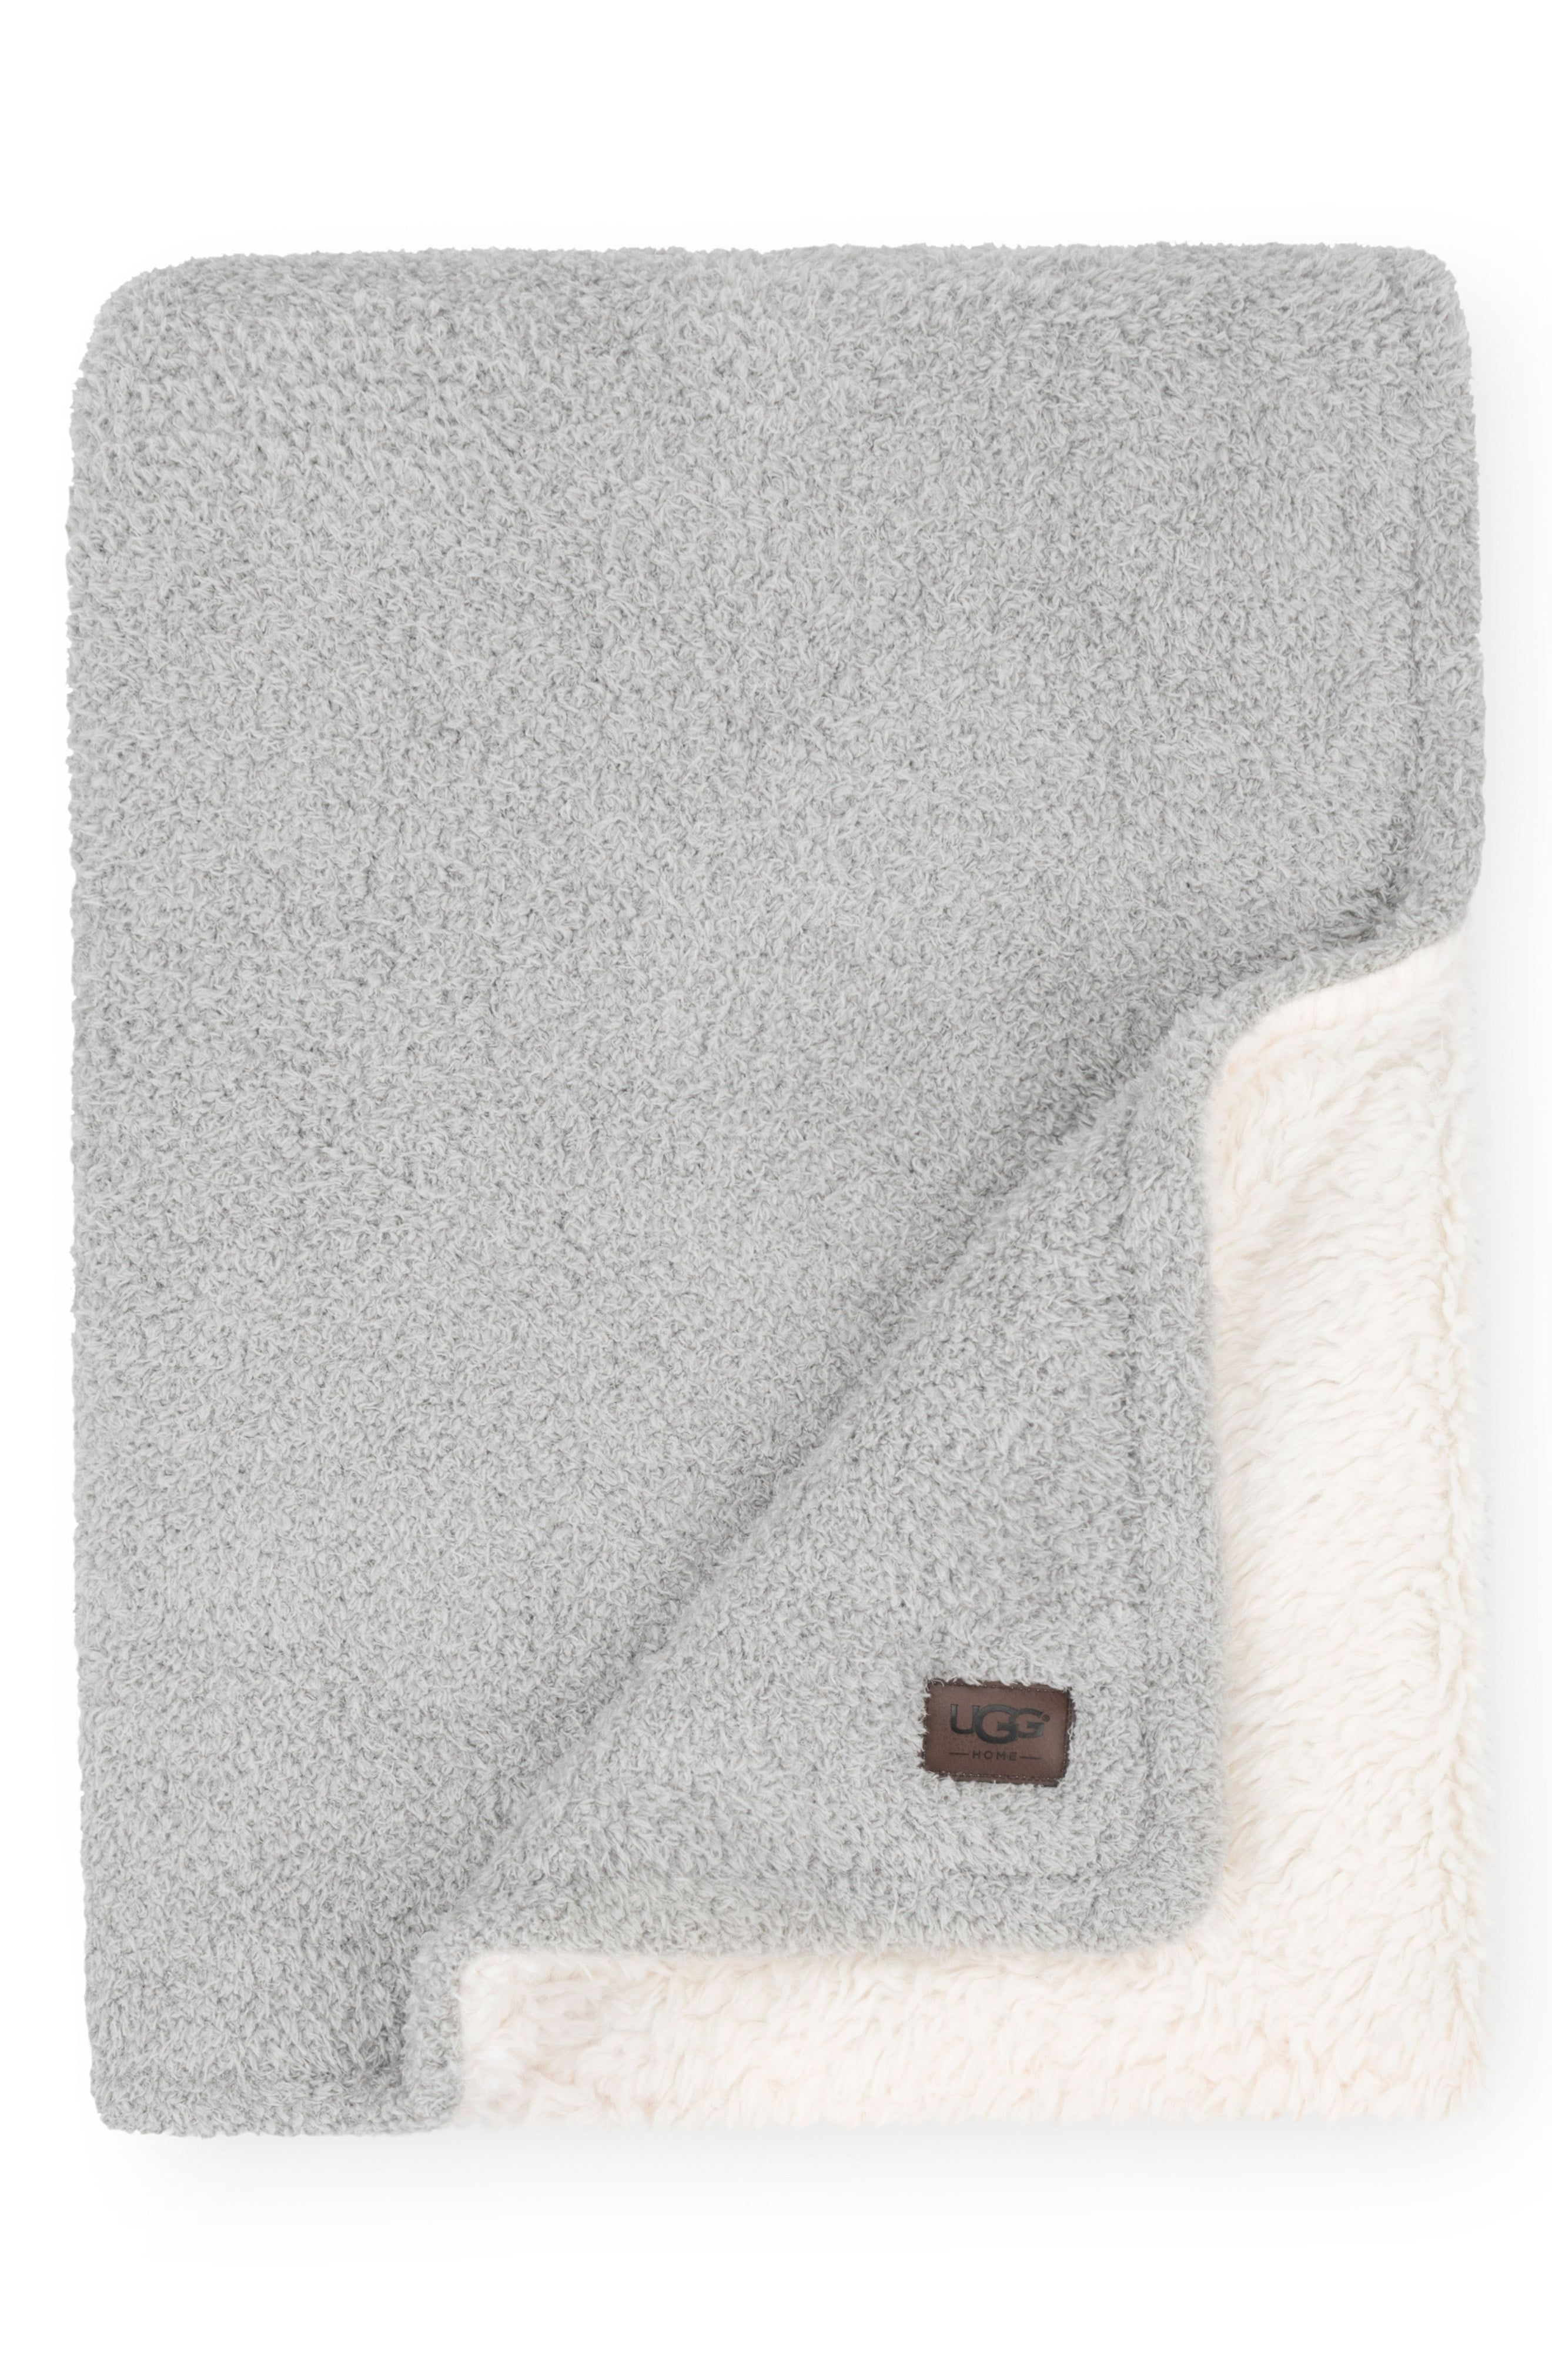 1344c4162d6 UGG Ana Faux Shearling Throw in 2019 | Products | Knitted throws ...